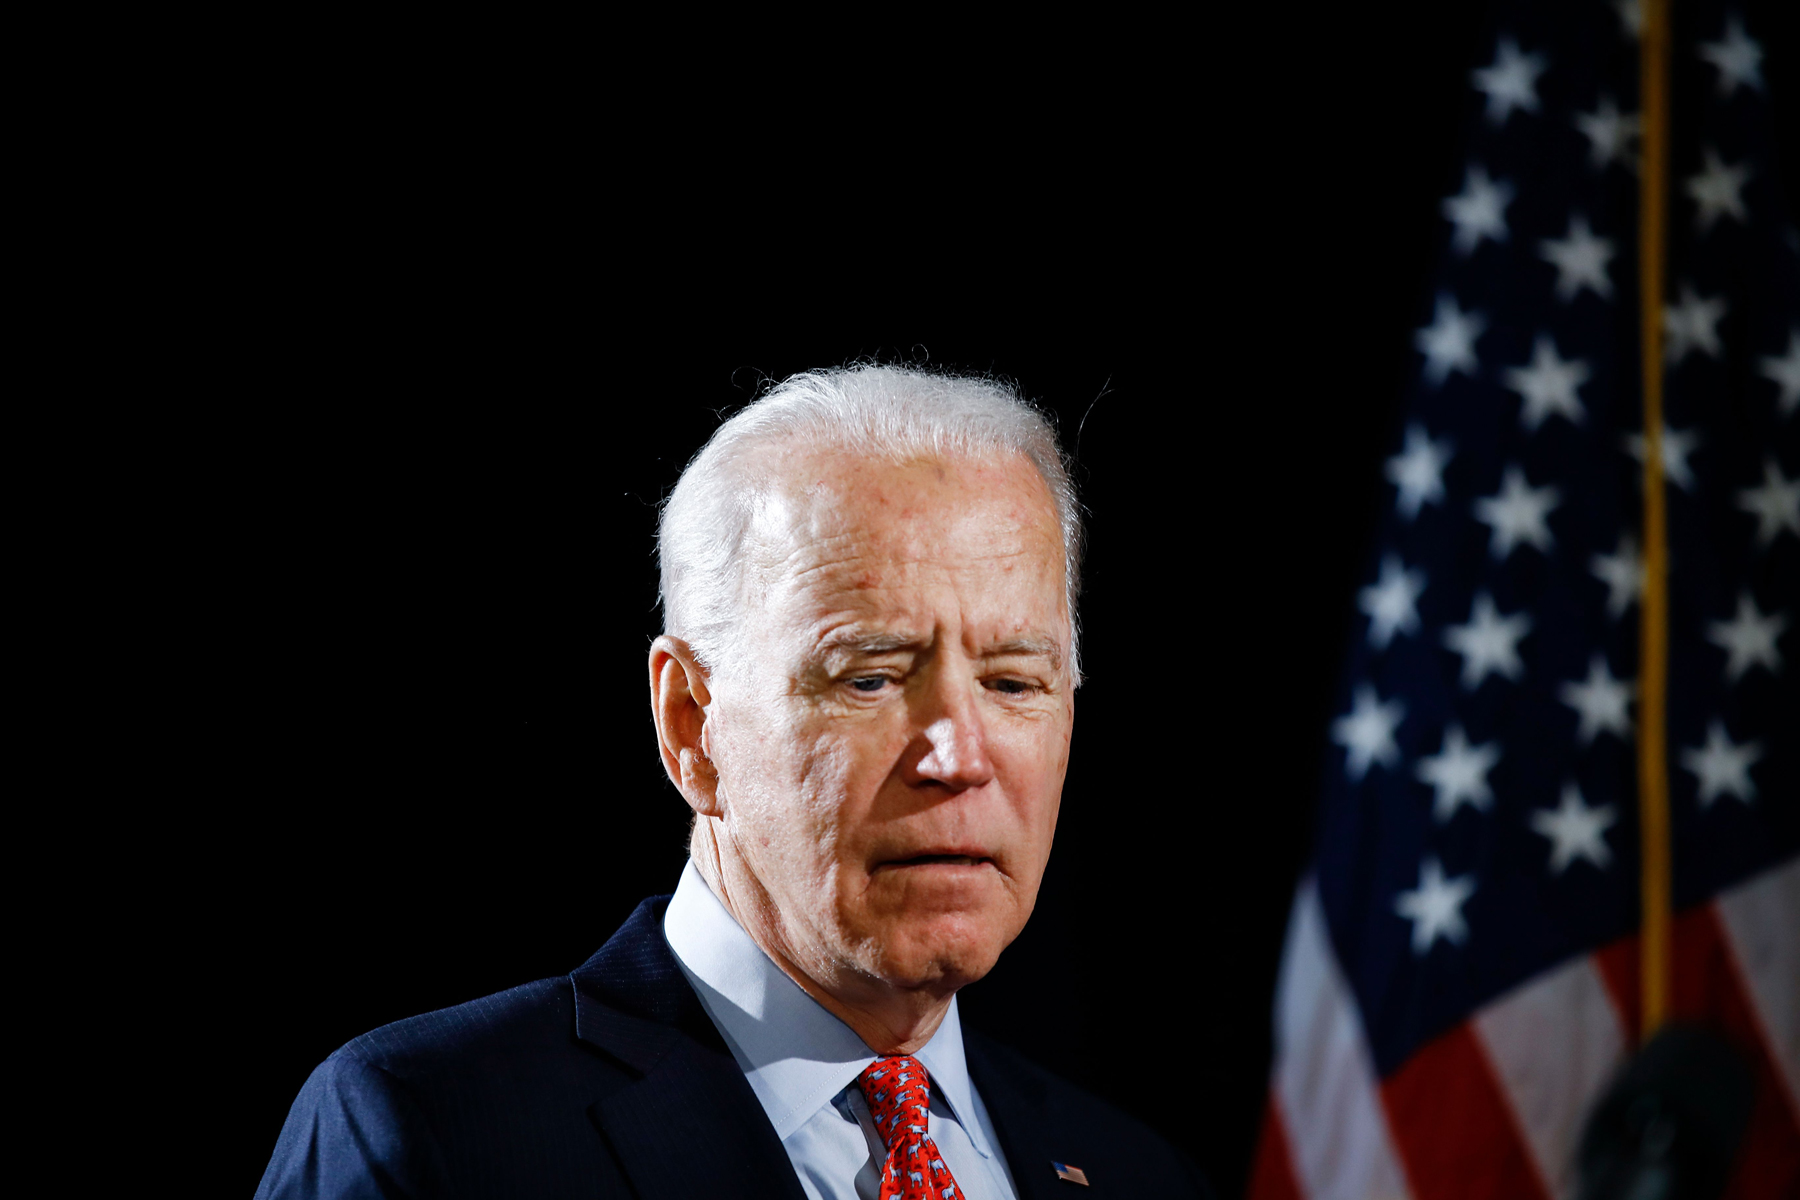 Democratic presidential candidate former Vice President Joe Biden arrives to speak about the coronavirus, in Wilmington, DelElection 2020 Joe Biden, Wilmington, United States - 12 Mar 2020